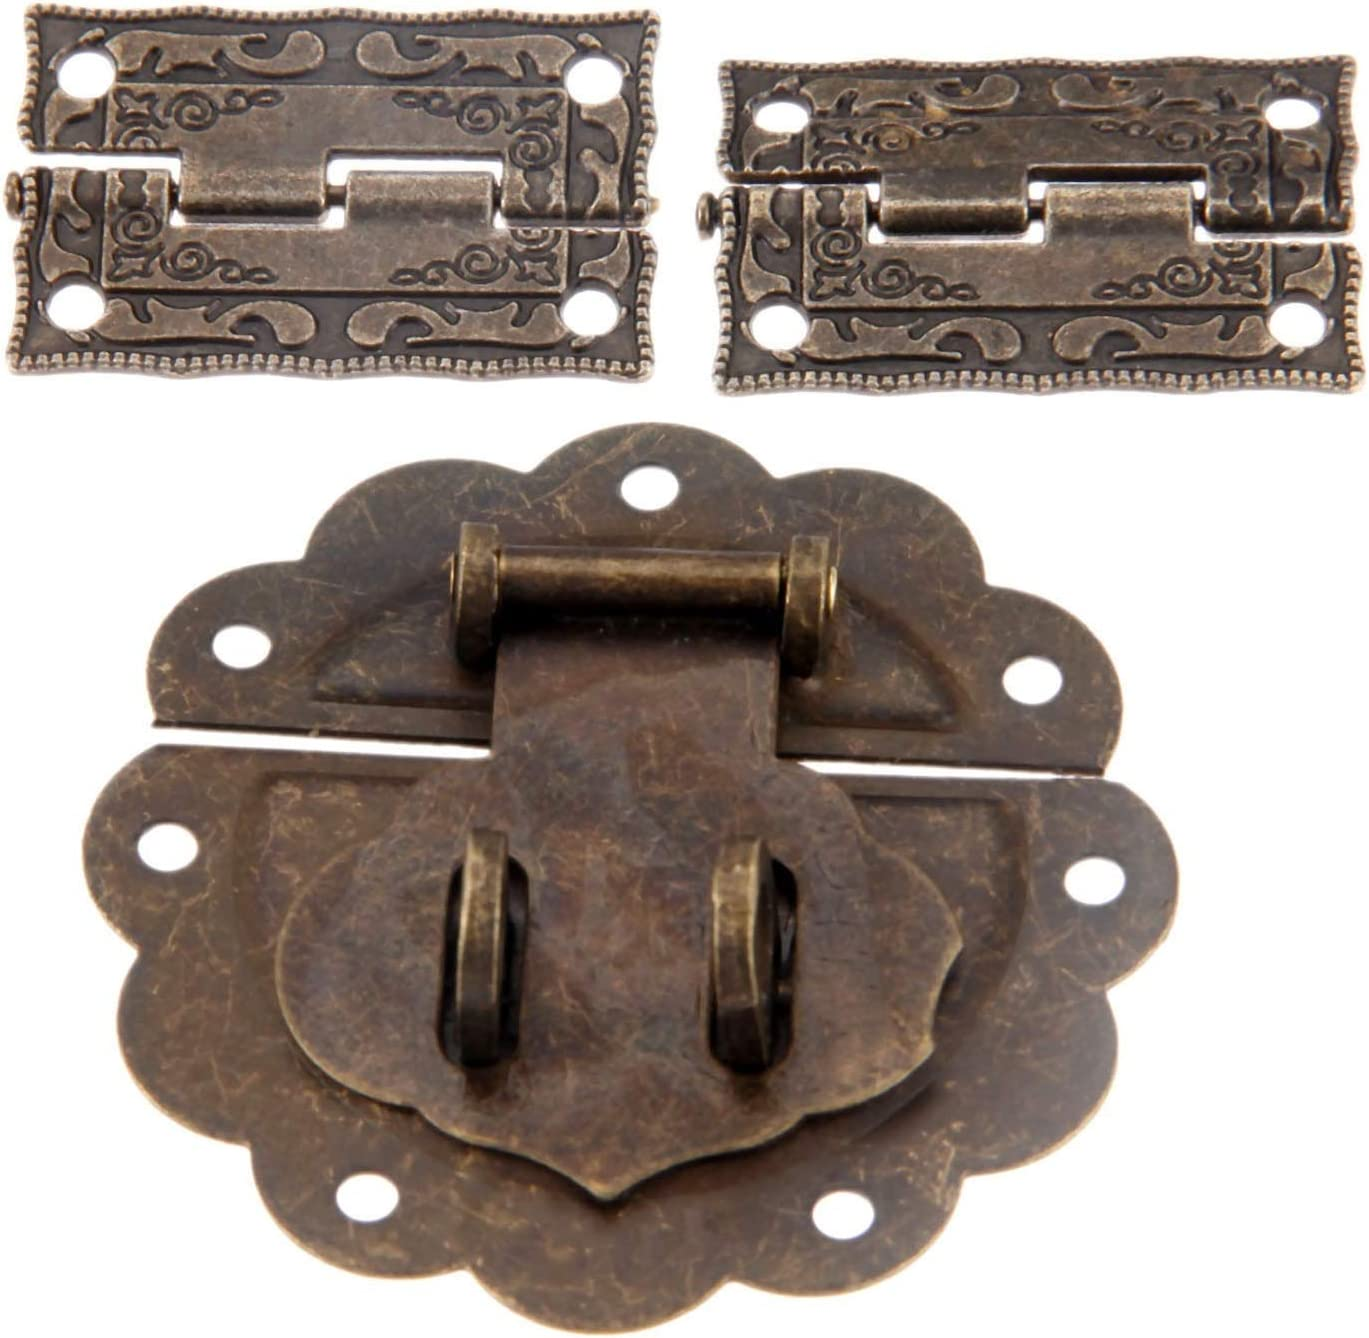 Stainless Popular shop is the lowest price challenge Steel Lock Antique Furniture Lat Hinge We OFFer at cheap prices Toggle Hardware